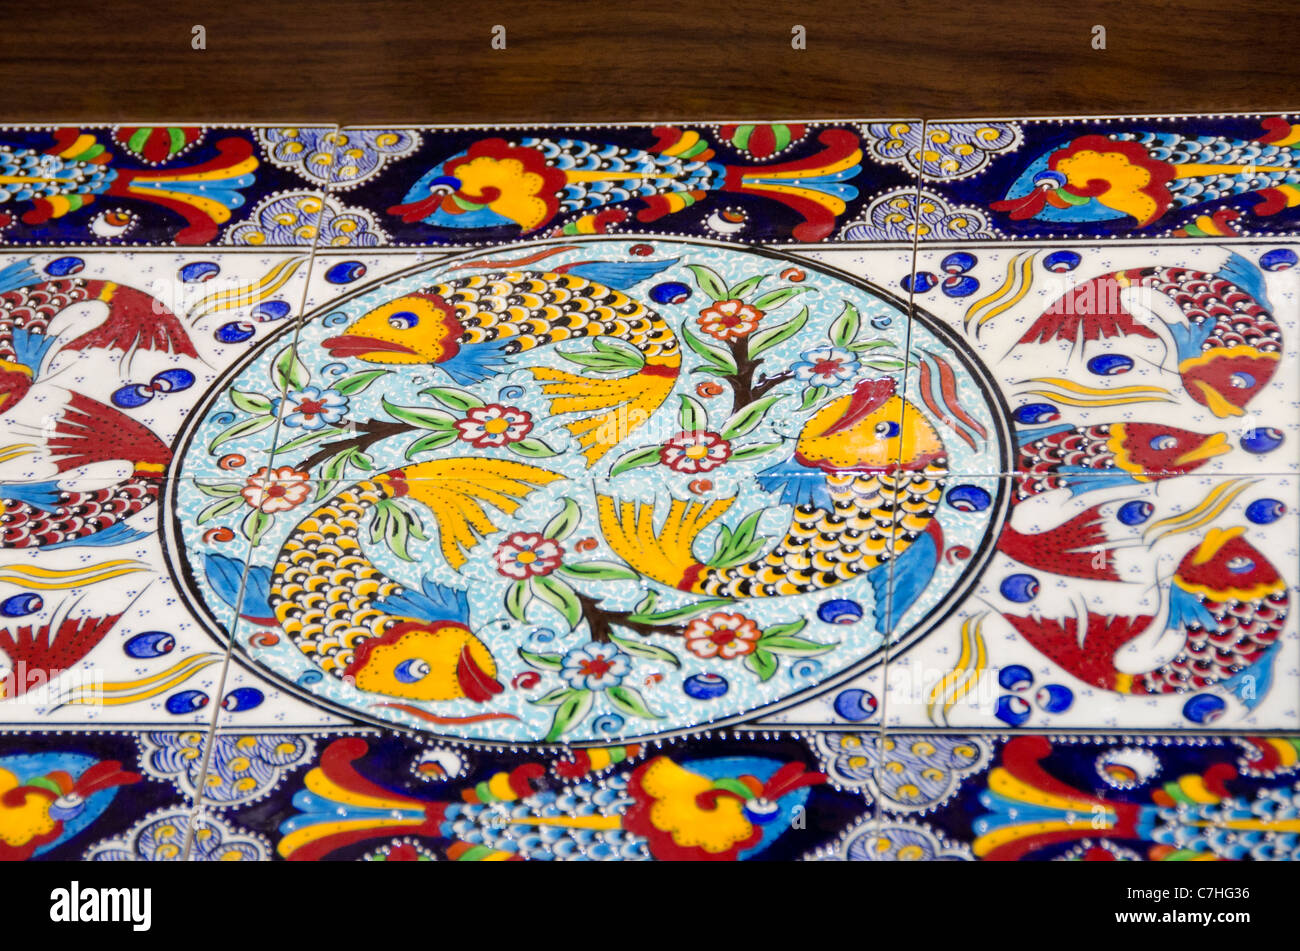 Turkey Istanbul Colorful hand painted Turkish tiles with fish